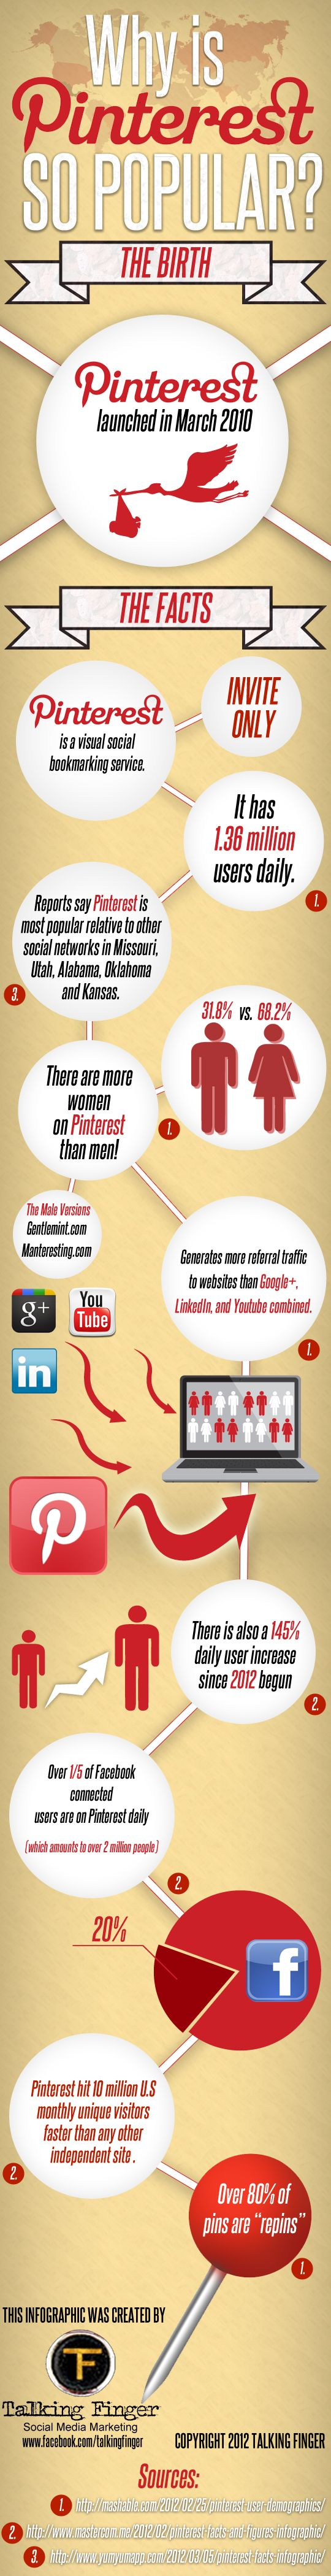 Cool infographic on #pinterest and its popularity in the #socialmedia world